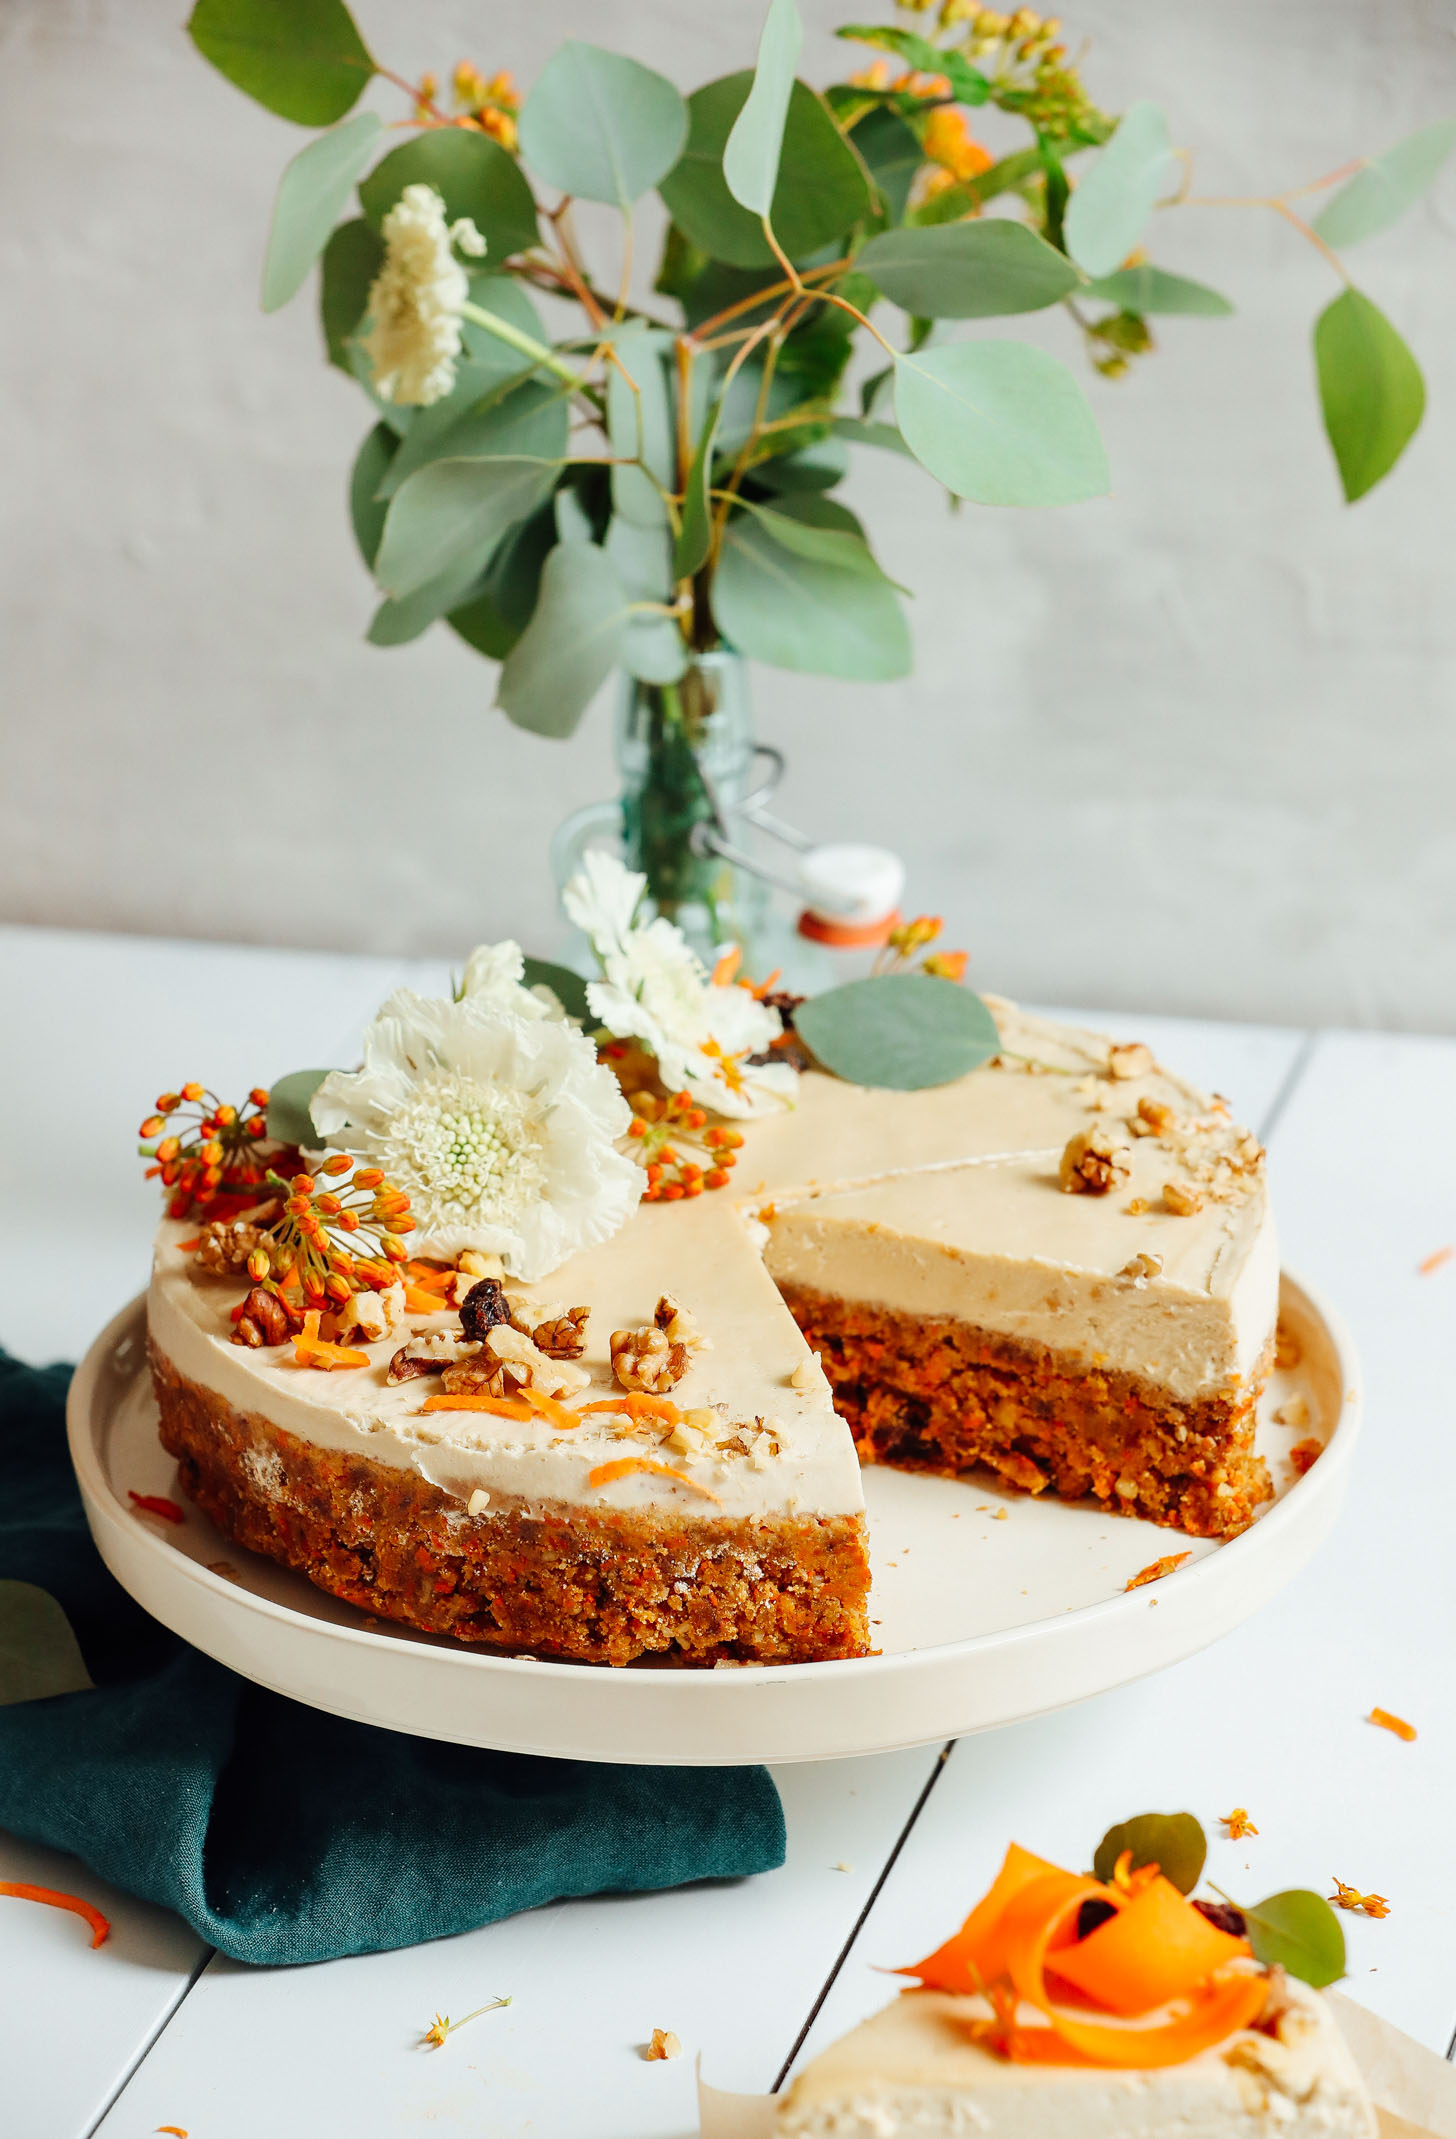 Raw Vegan Carrot Cake Minimalist Baker Recipes